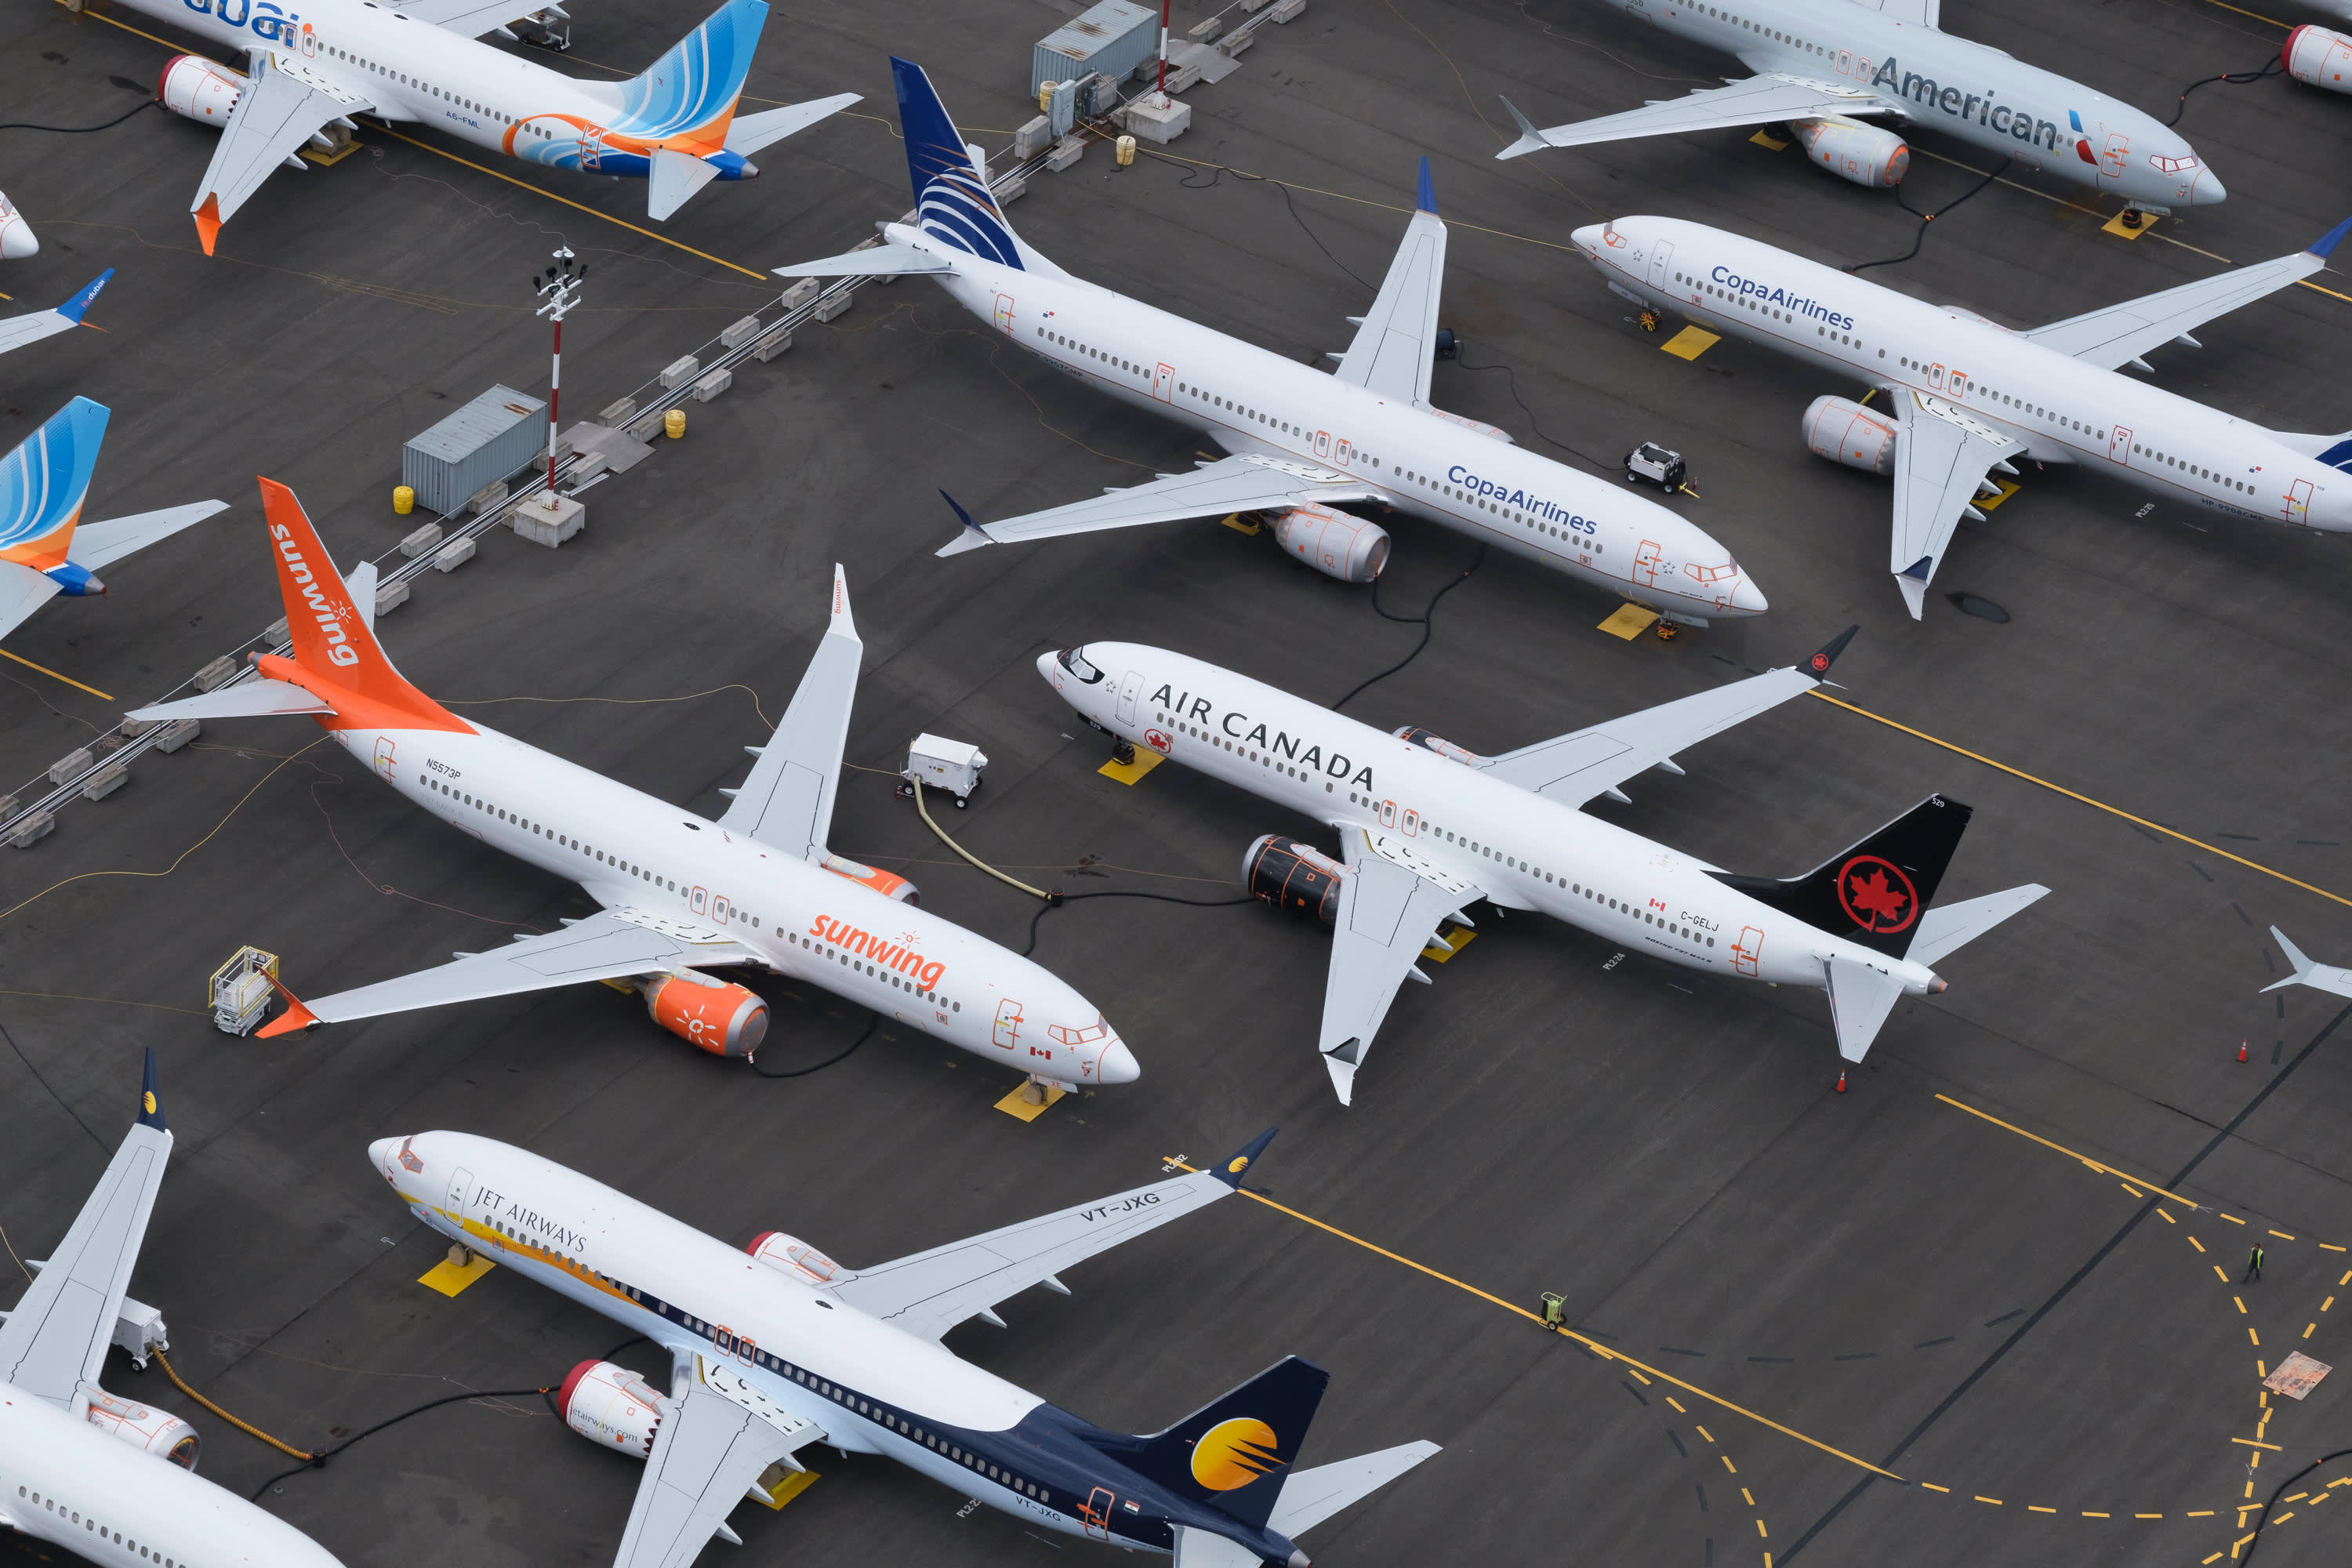 Boeing jetliner orders continue to fall as 737 Max grounding wears on